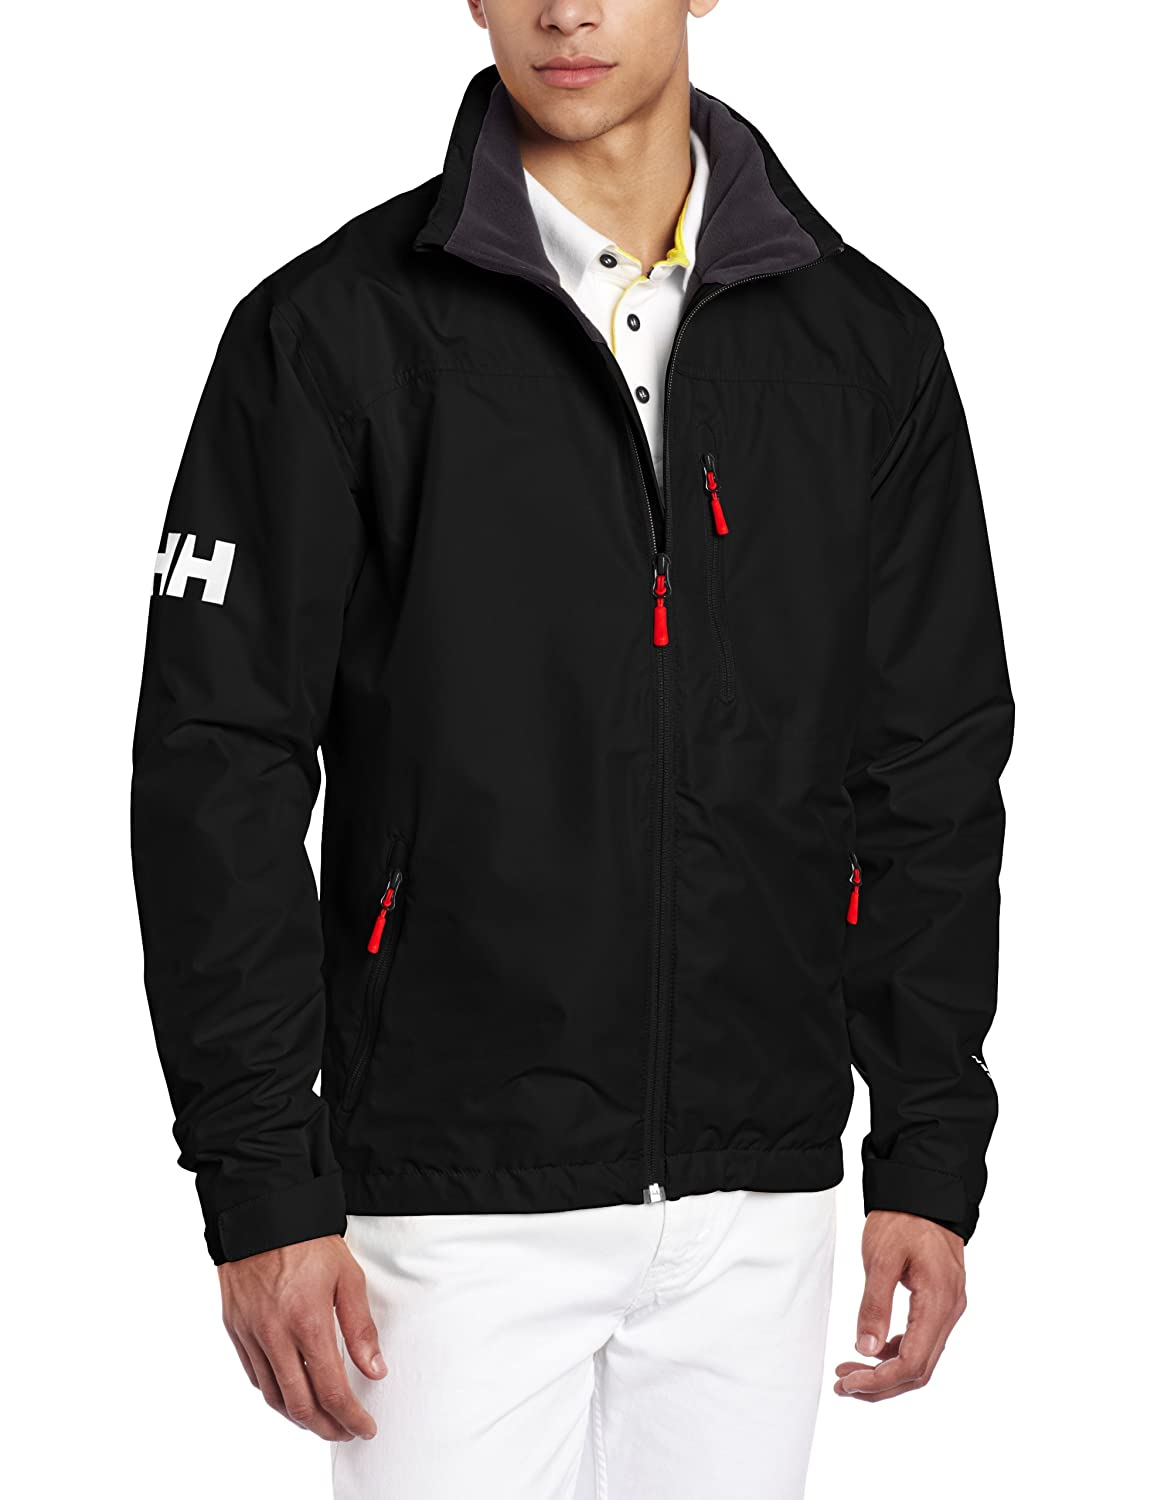 helly hansen veste couche interm diaire pour homme rouge rouge small ebay. Black Bedroom Furniture Sets. Home Design Ideas